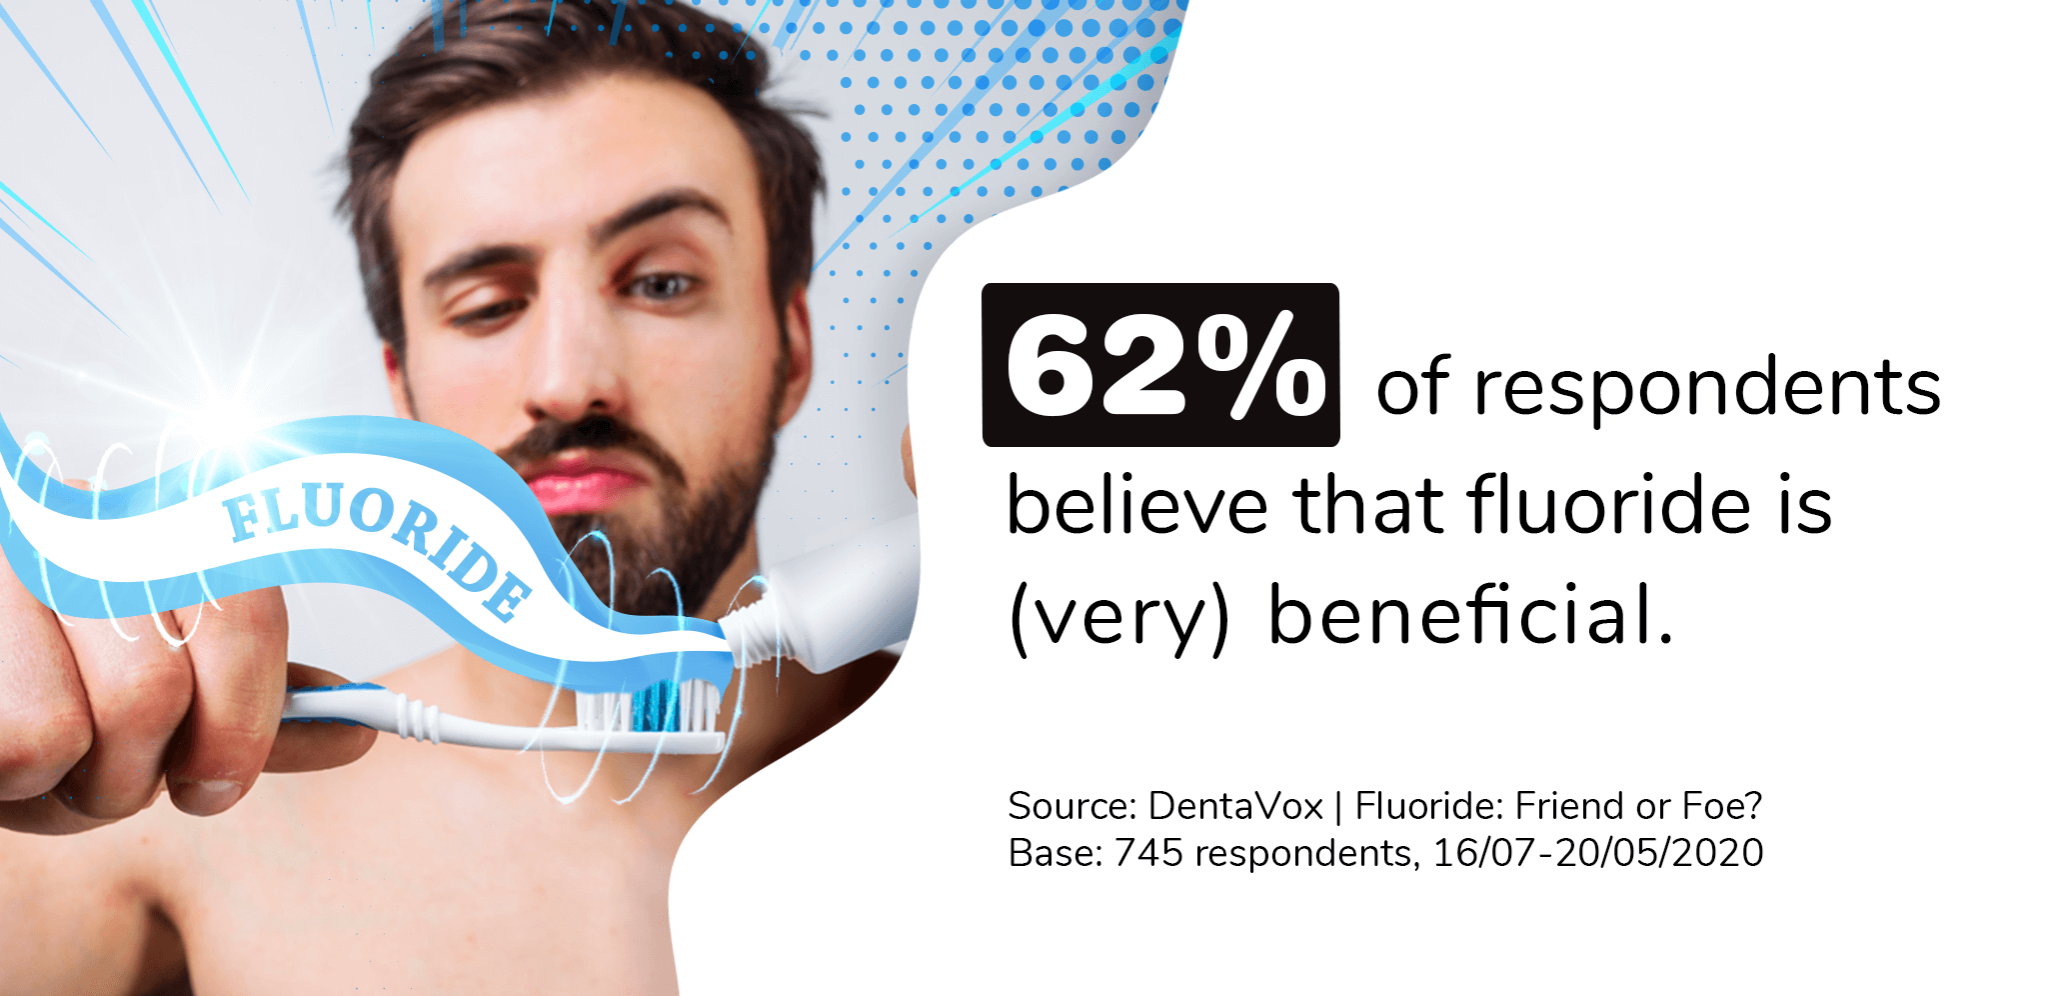 Dentavox dental research fluorid beneficial soc